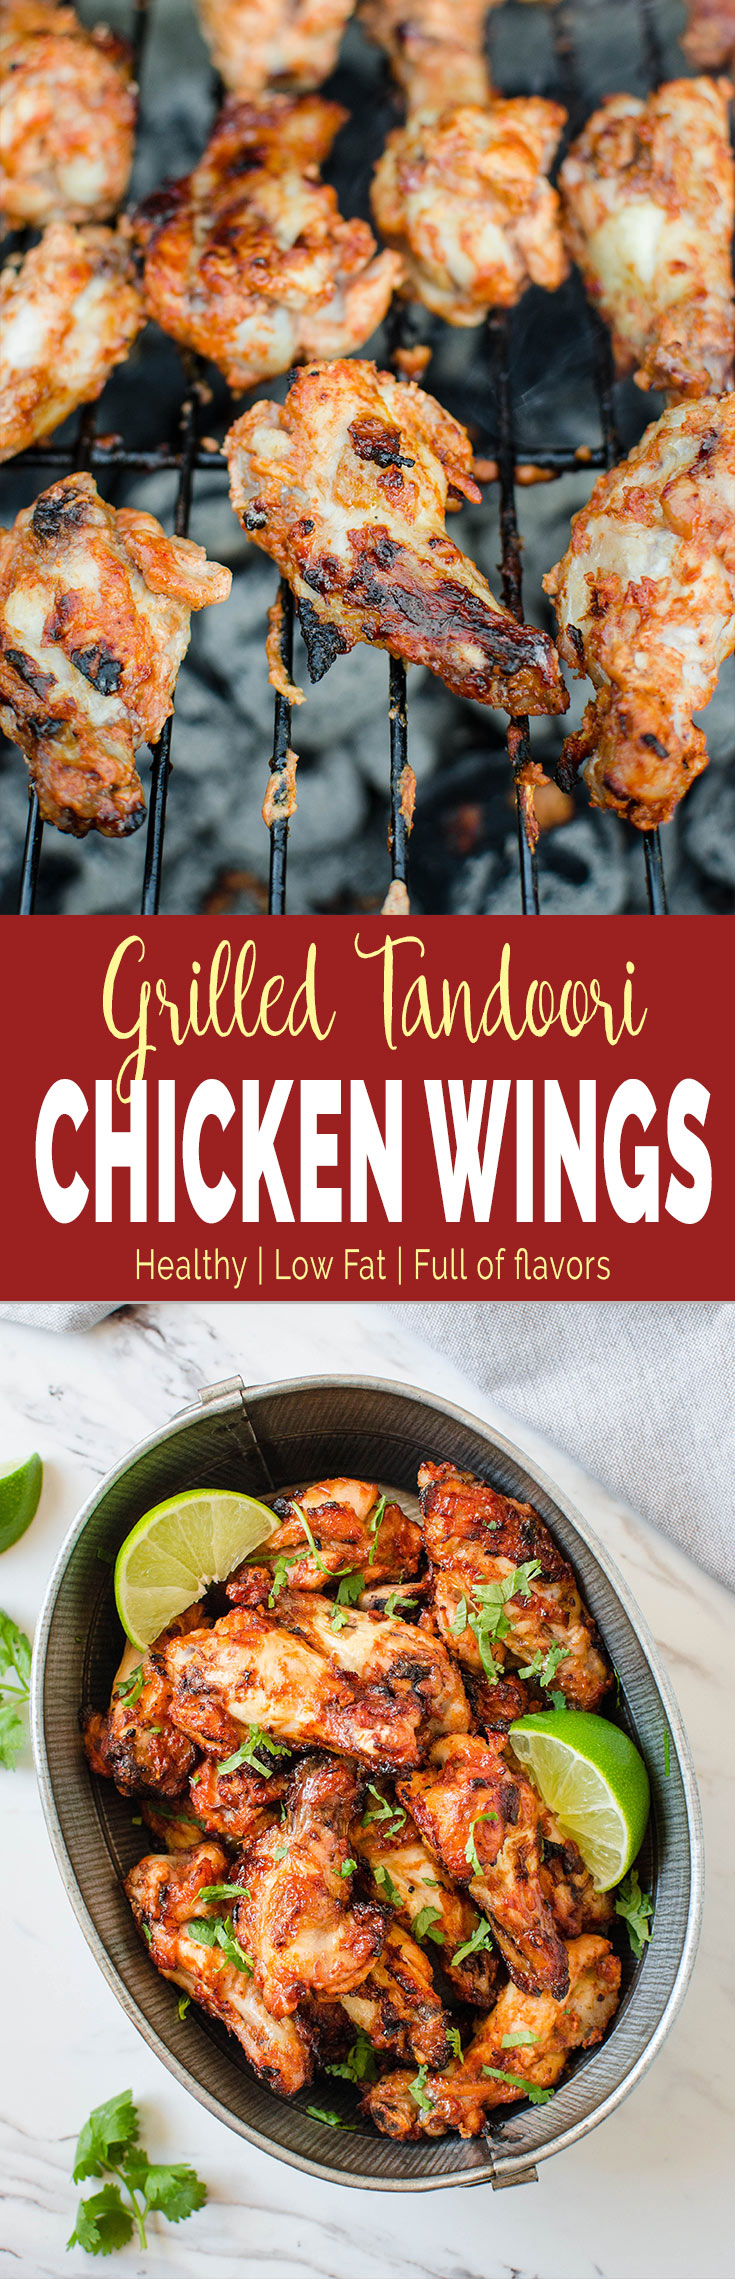 Make these amazingly flavorful grilled Tandoori Chicken Wings when you fire up your grill next time. The smoky taste that develops during grilling make them even more delicious.